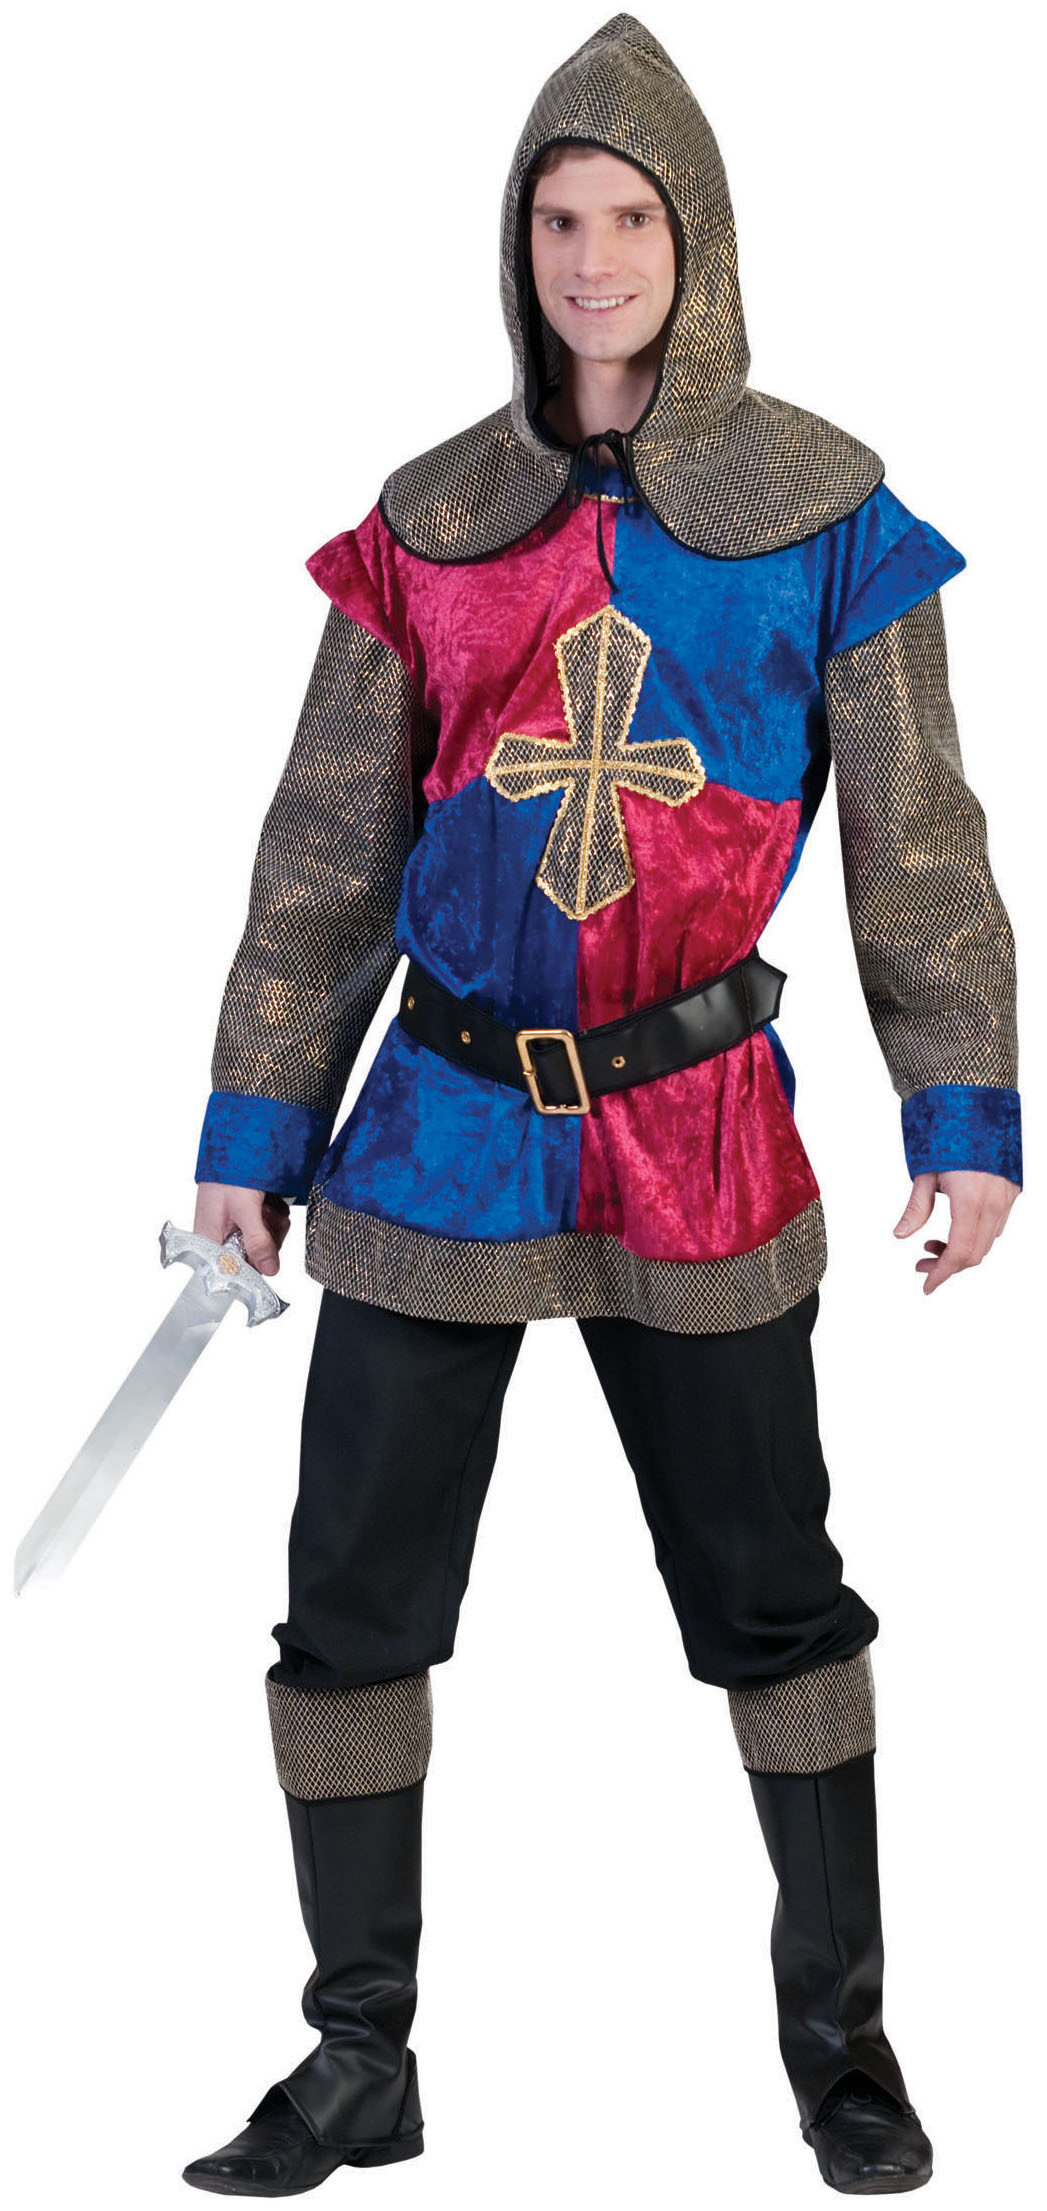 Medieval knight adult costume have removed